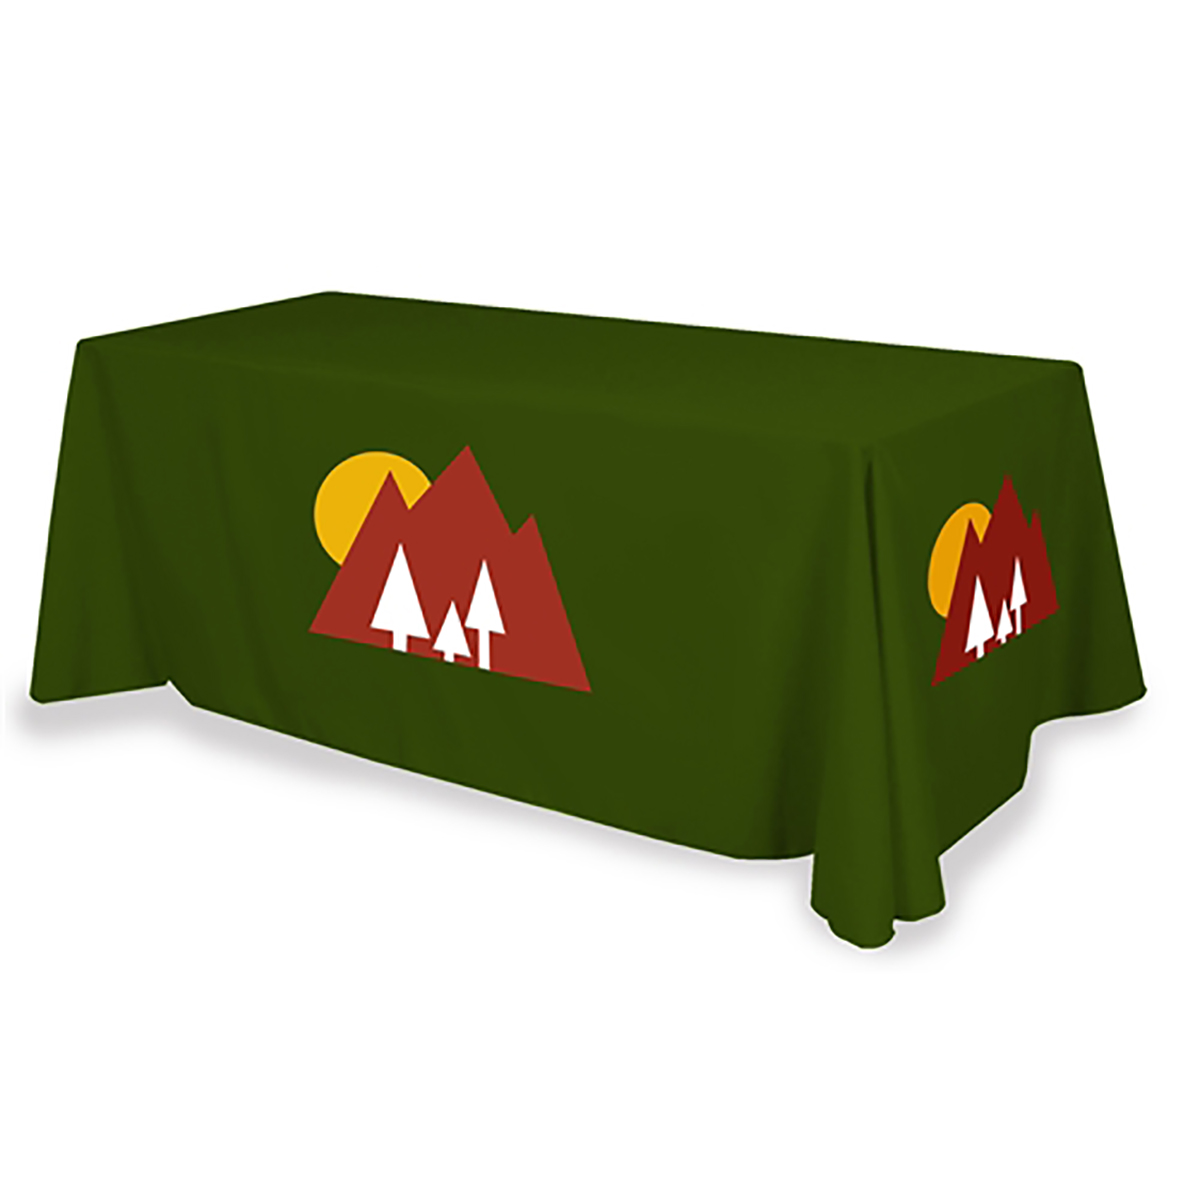 Standard 6ft Table Throw - Full Color - 3 Sided